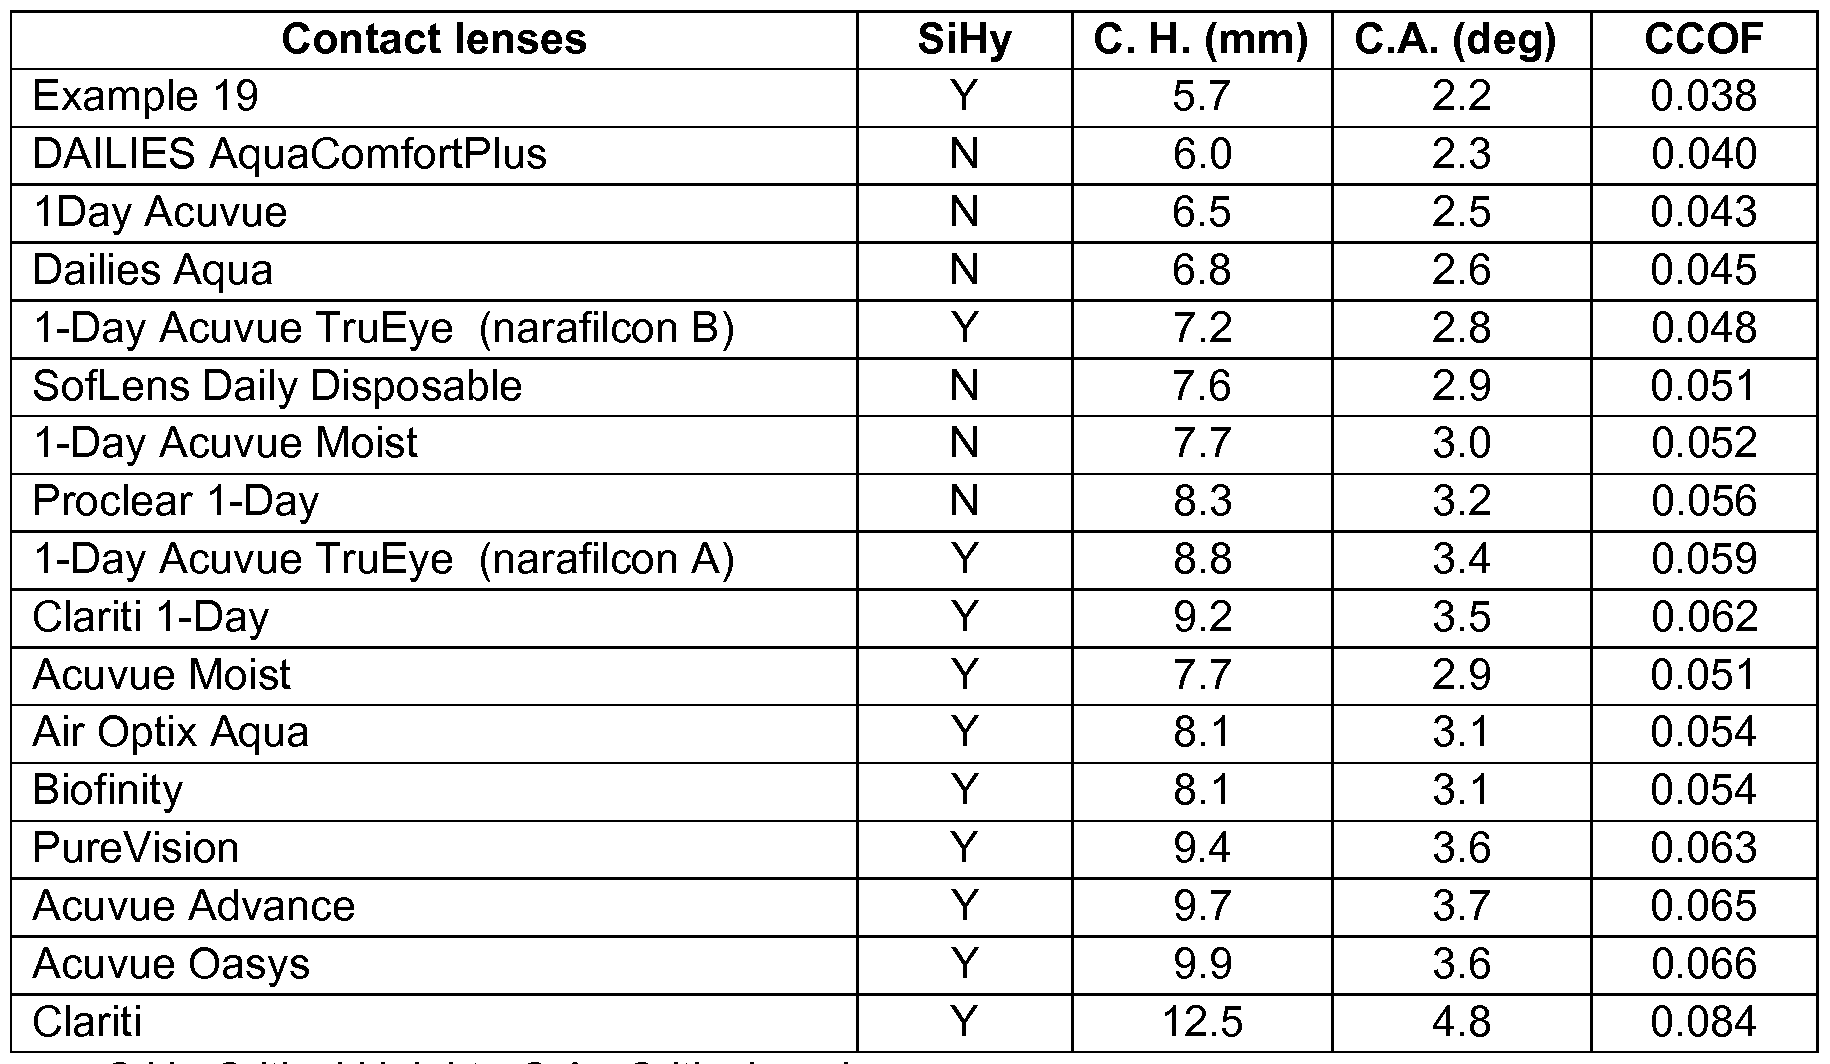 WO2012016096A1 - Silicone hydrogel lenses with water-rich